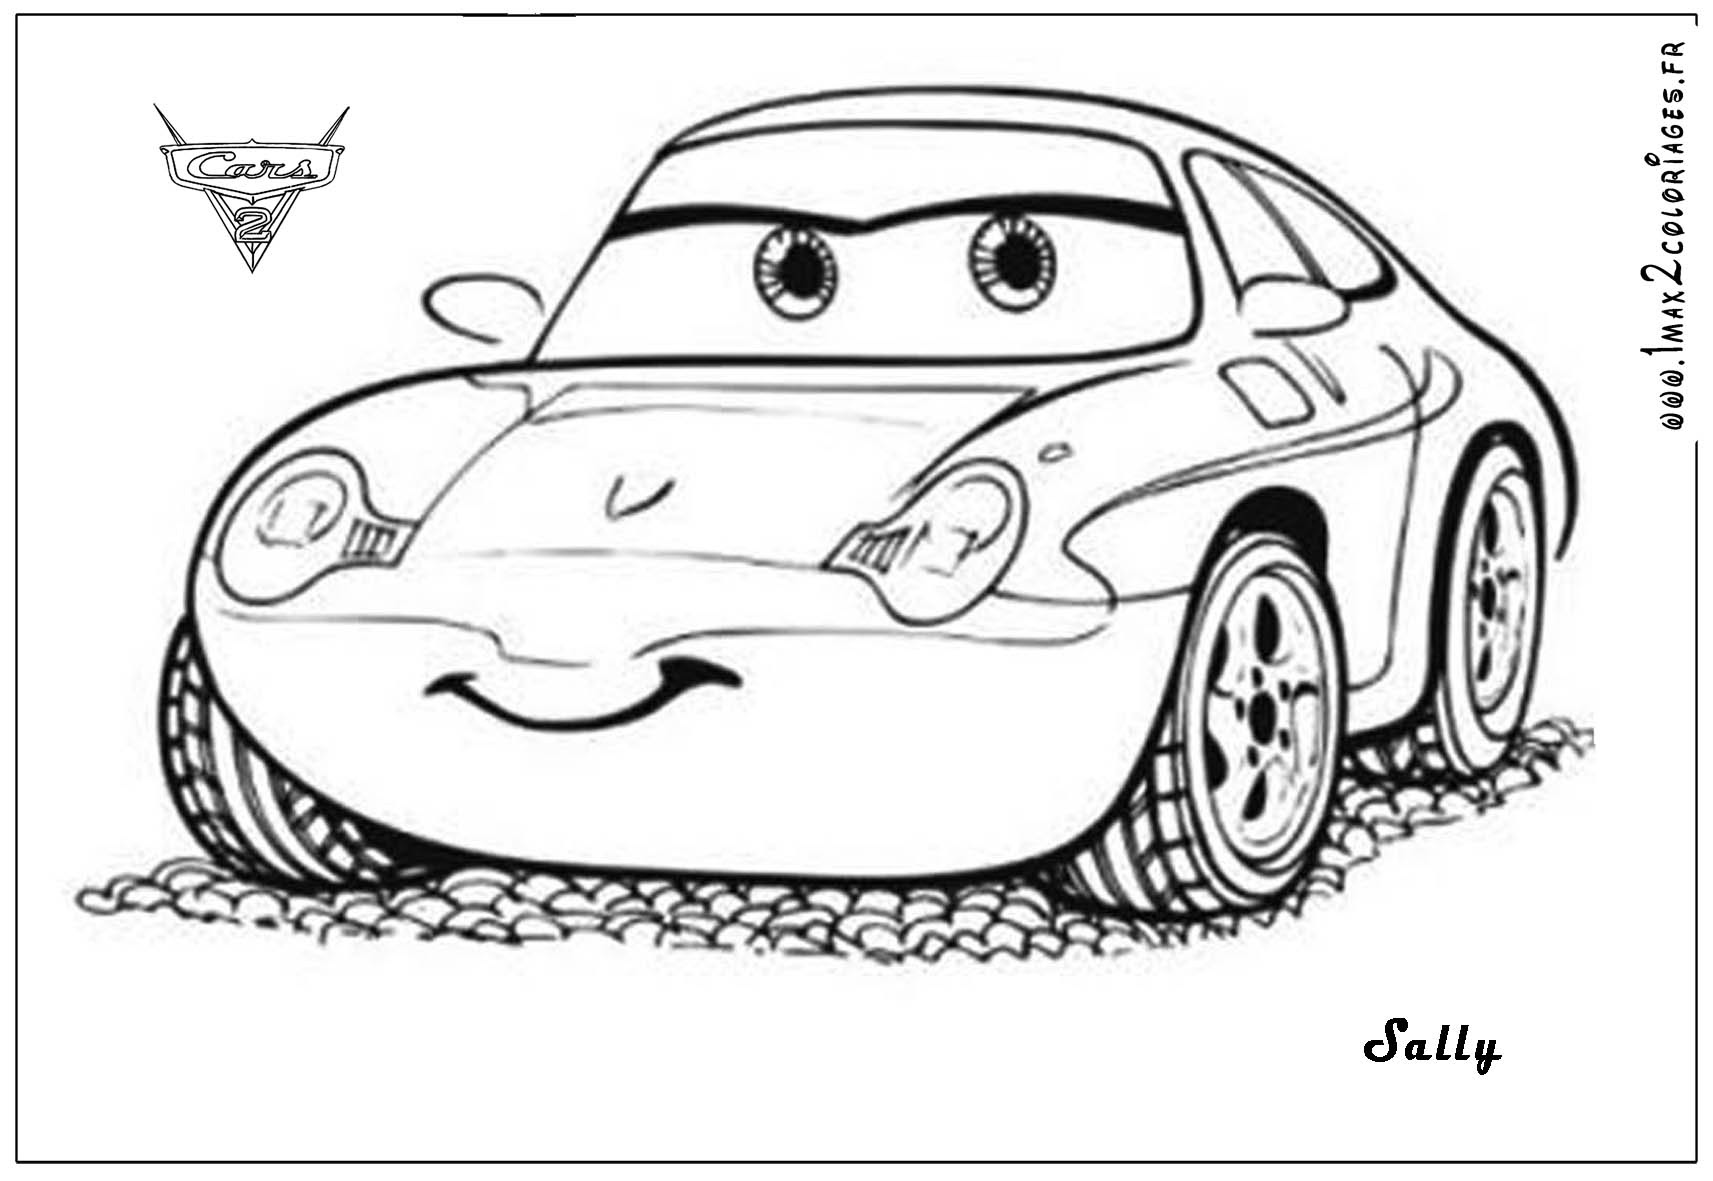 Disney Cars 15 Lewis Hamilton Coloring Pages